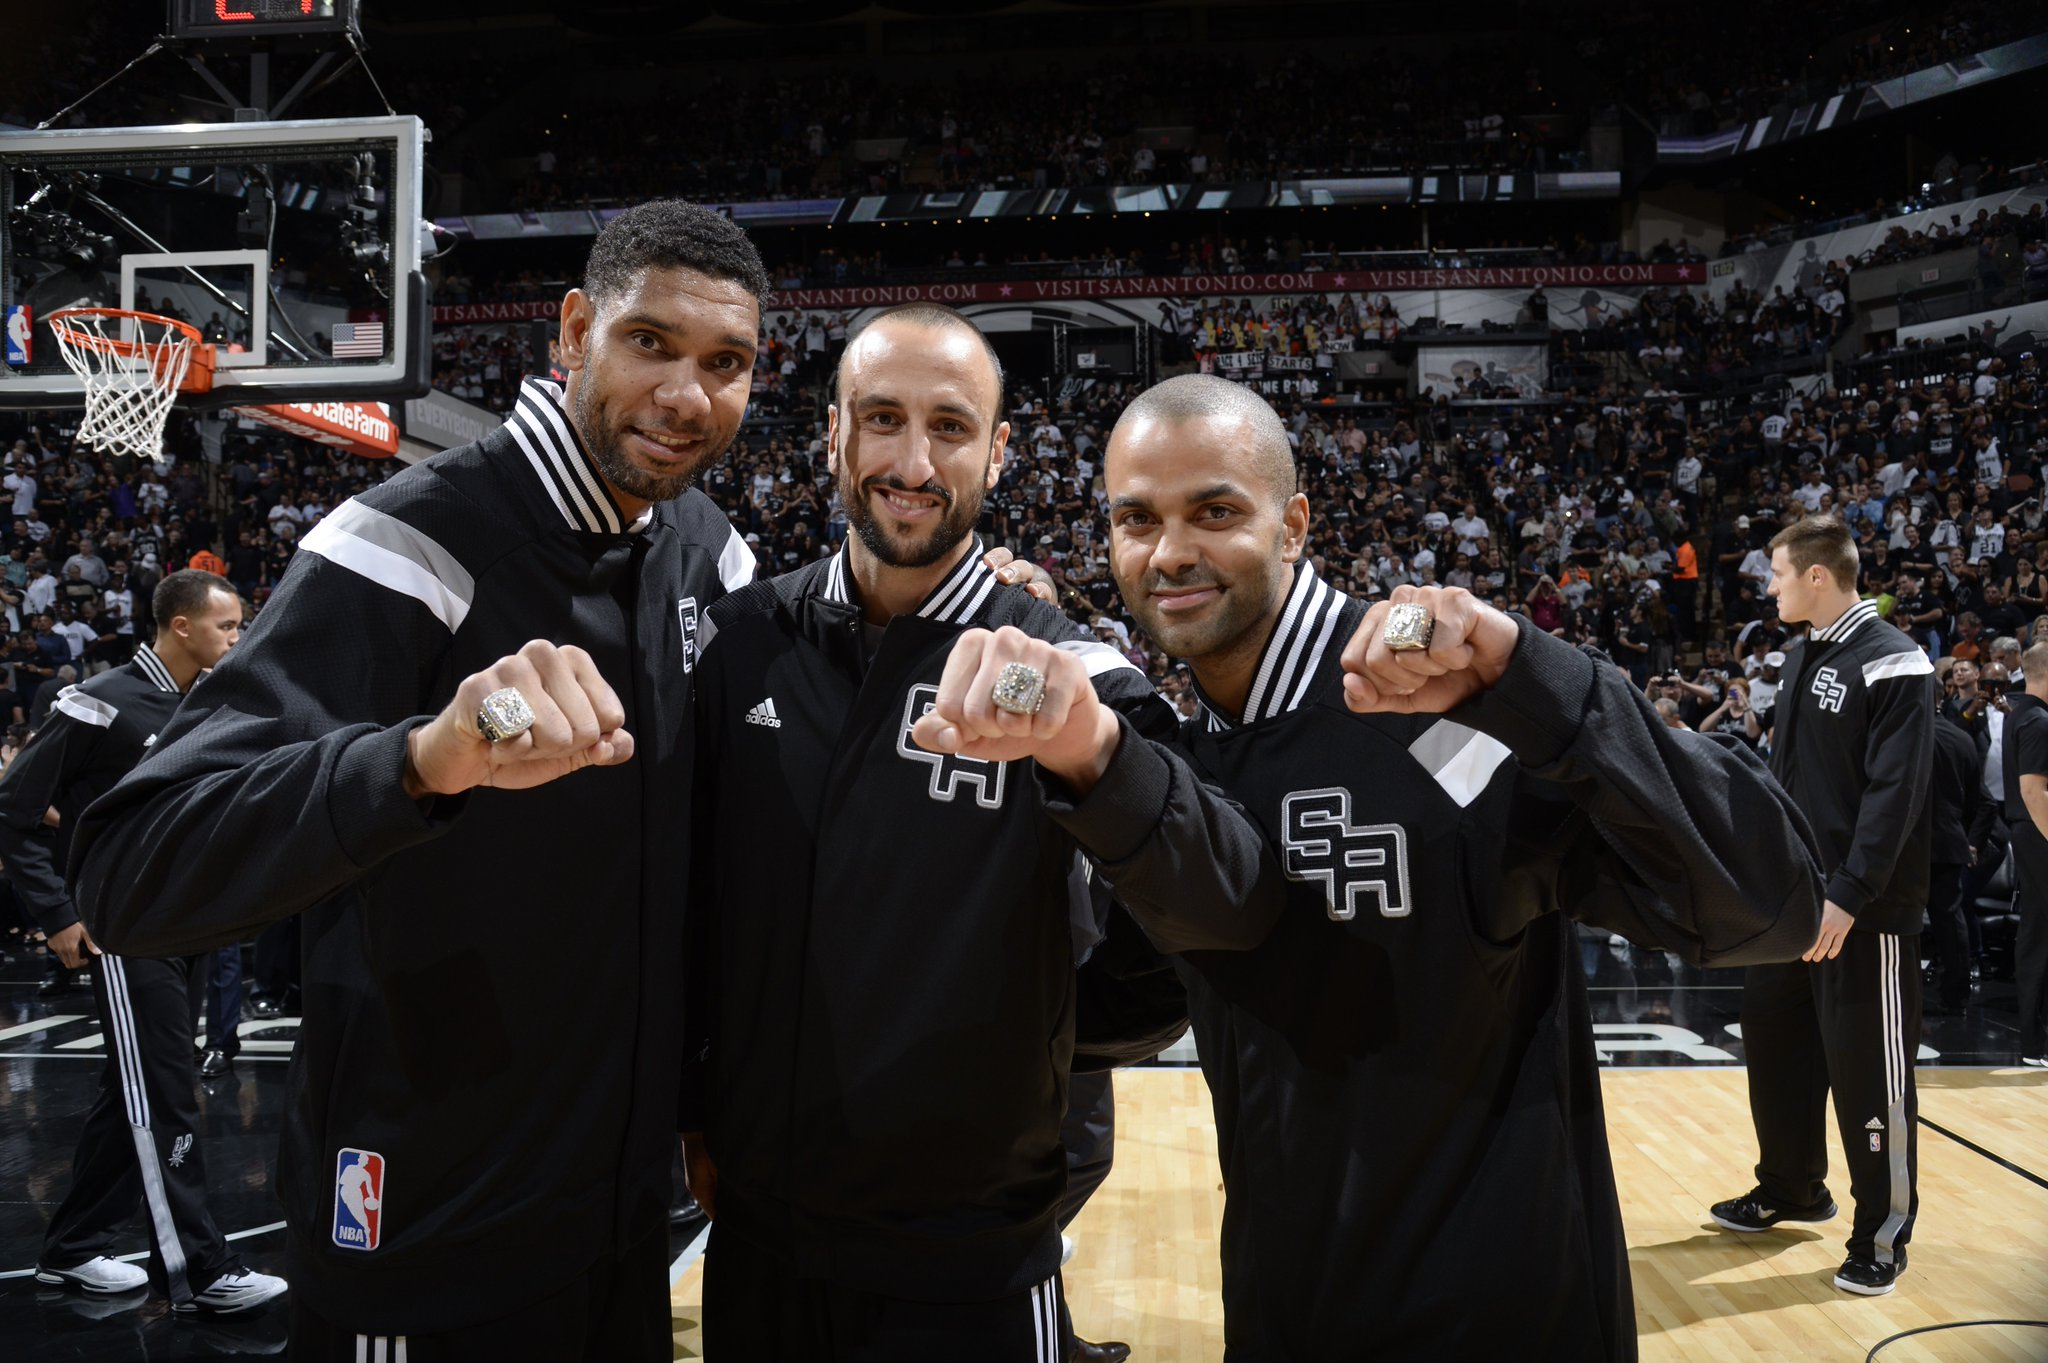 Manu's retirement marks the end of an era in San Antonio  So what's next for the Spurs? https://t.co/x7bXJaqmWU https://t.co/WHSAzMZcHE